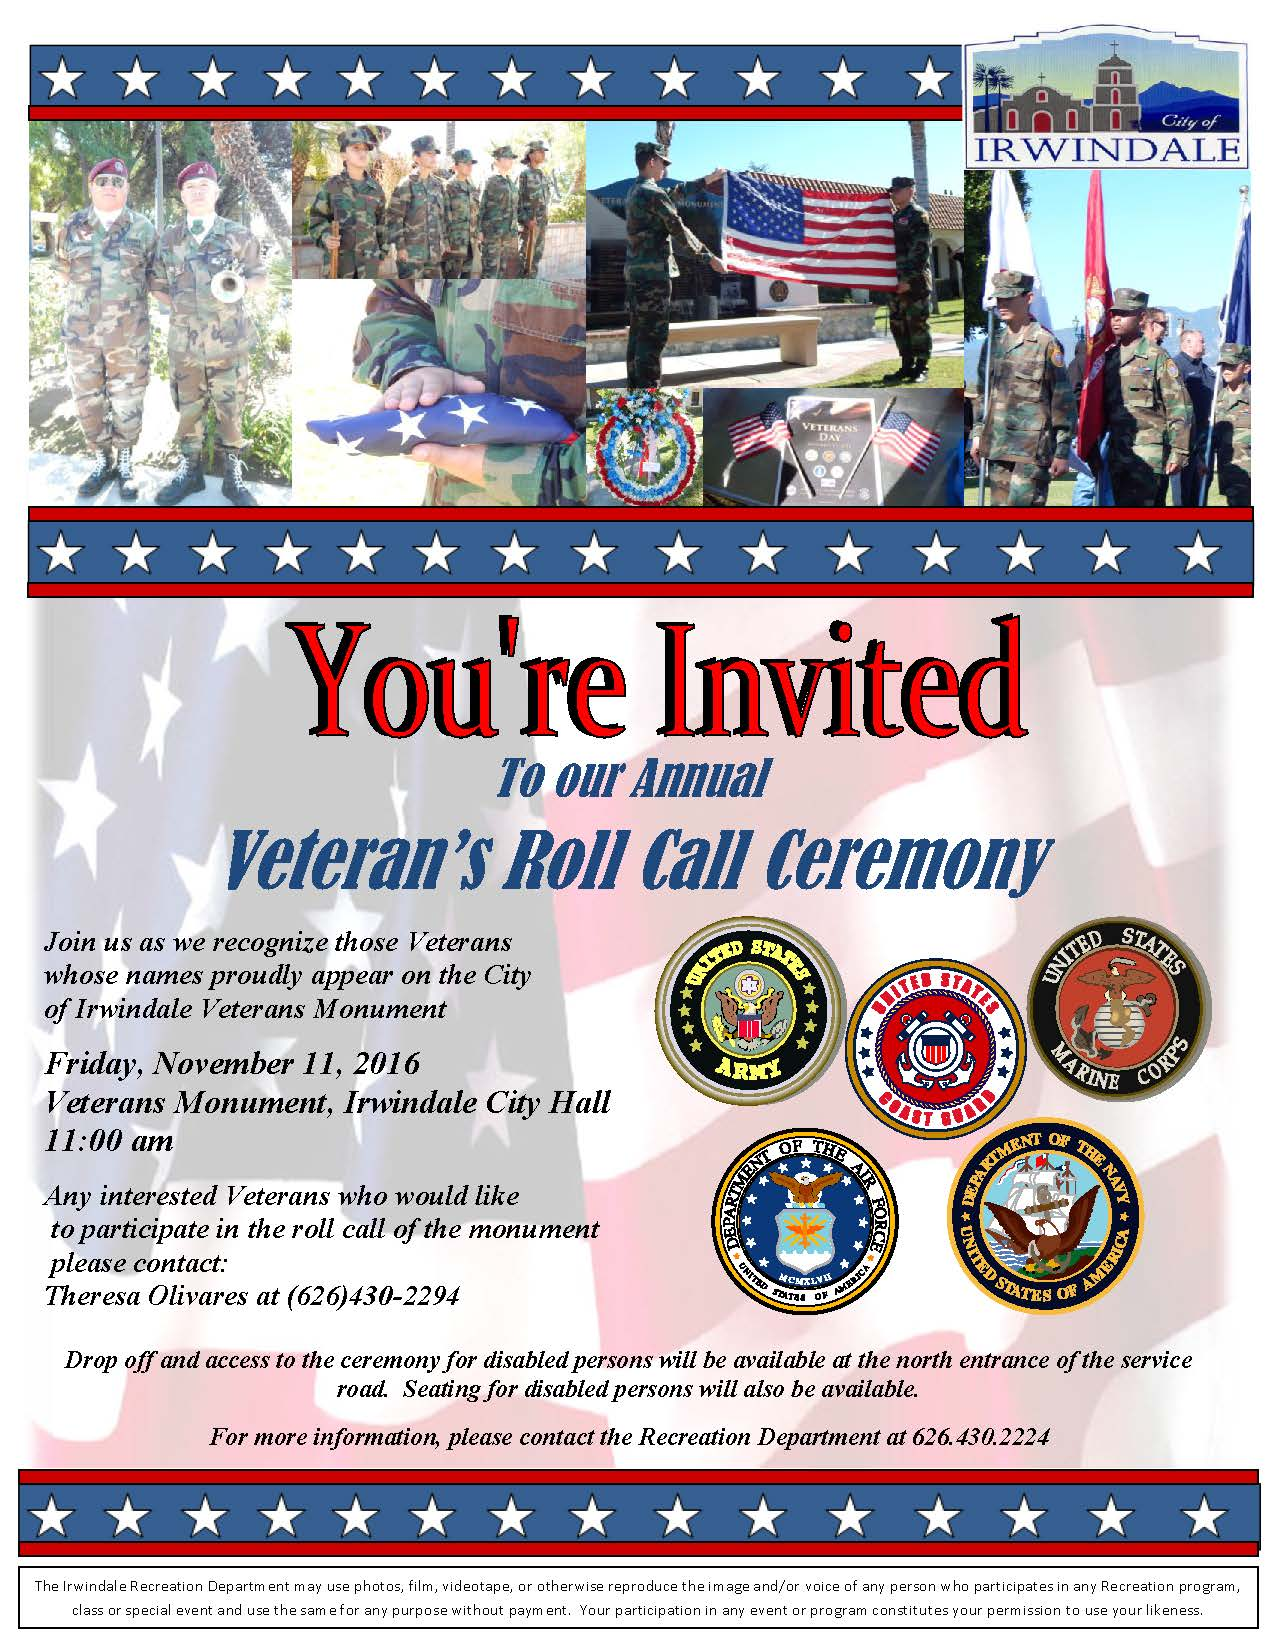 veterans memorial flyer16.jpg